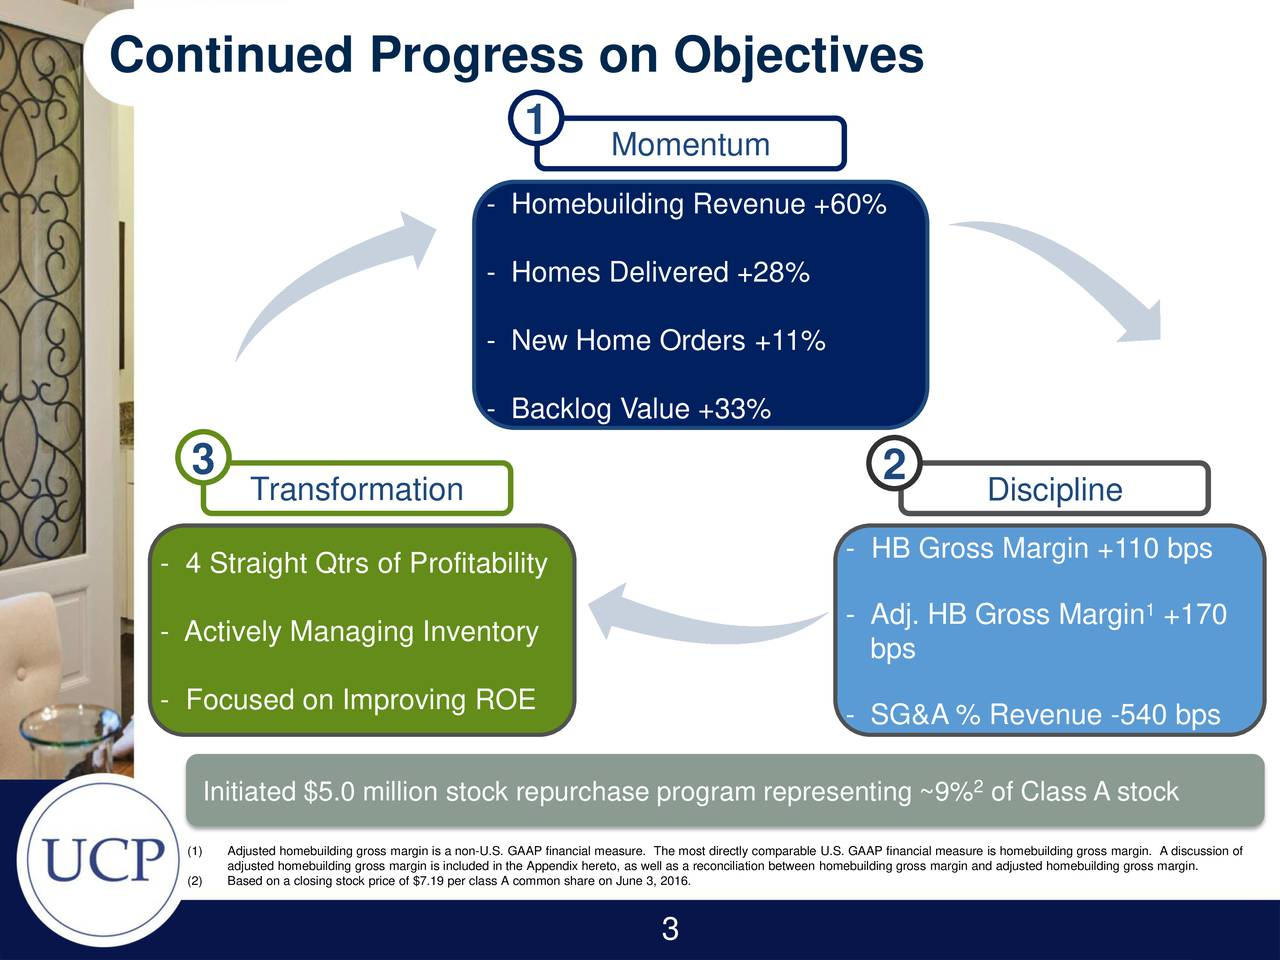 1 Momentum - Homebuilding Revenue +60% - Homes Delivered +28% - New Home Orders +11% - Backlog Value +33% 3 2 Transformation Discipline - HB Gross Margin +110 bps - 4 Straight Qtrs of Profitability - Adj. HB Gross Margin +170 - Actively Managing Inventory bps - Focused on Improving ROE - SG&A % Revenue -540 bps Initiated $5.0 million stock repurchase program representing ~9% of Class A stock (1)Adjusted homebuilding gross margin is a non-U.S. GAAP financial measure. The most directly comparable U.S. GAAP financial measure is homebuilding gross margin. A discussion of (2)Based on a closing stock price of $7.19 per class A common share on June 3, 2016. a reconciliation between homebuilding gross margin and adjusted homebuilding gross margin. 3 U